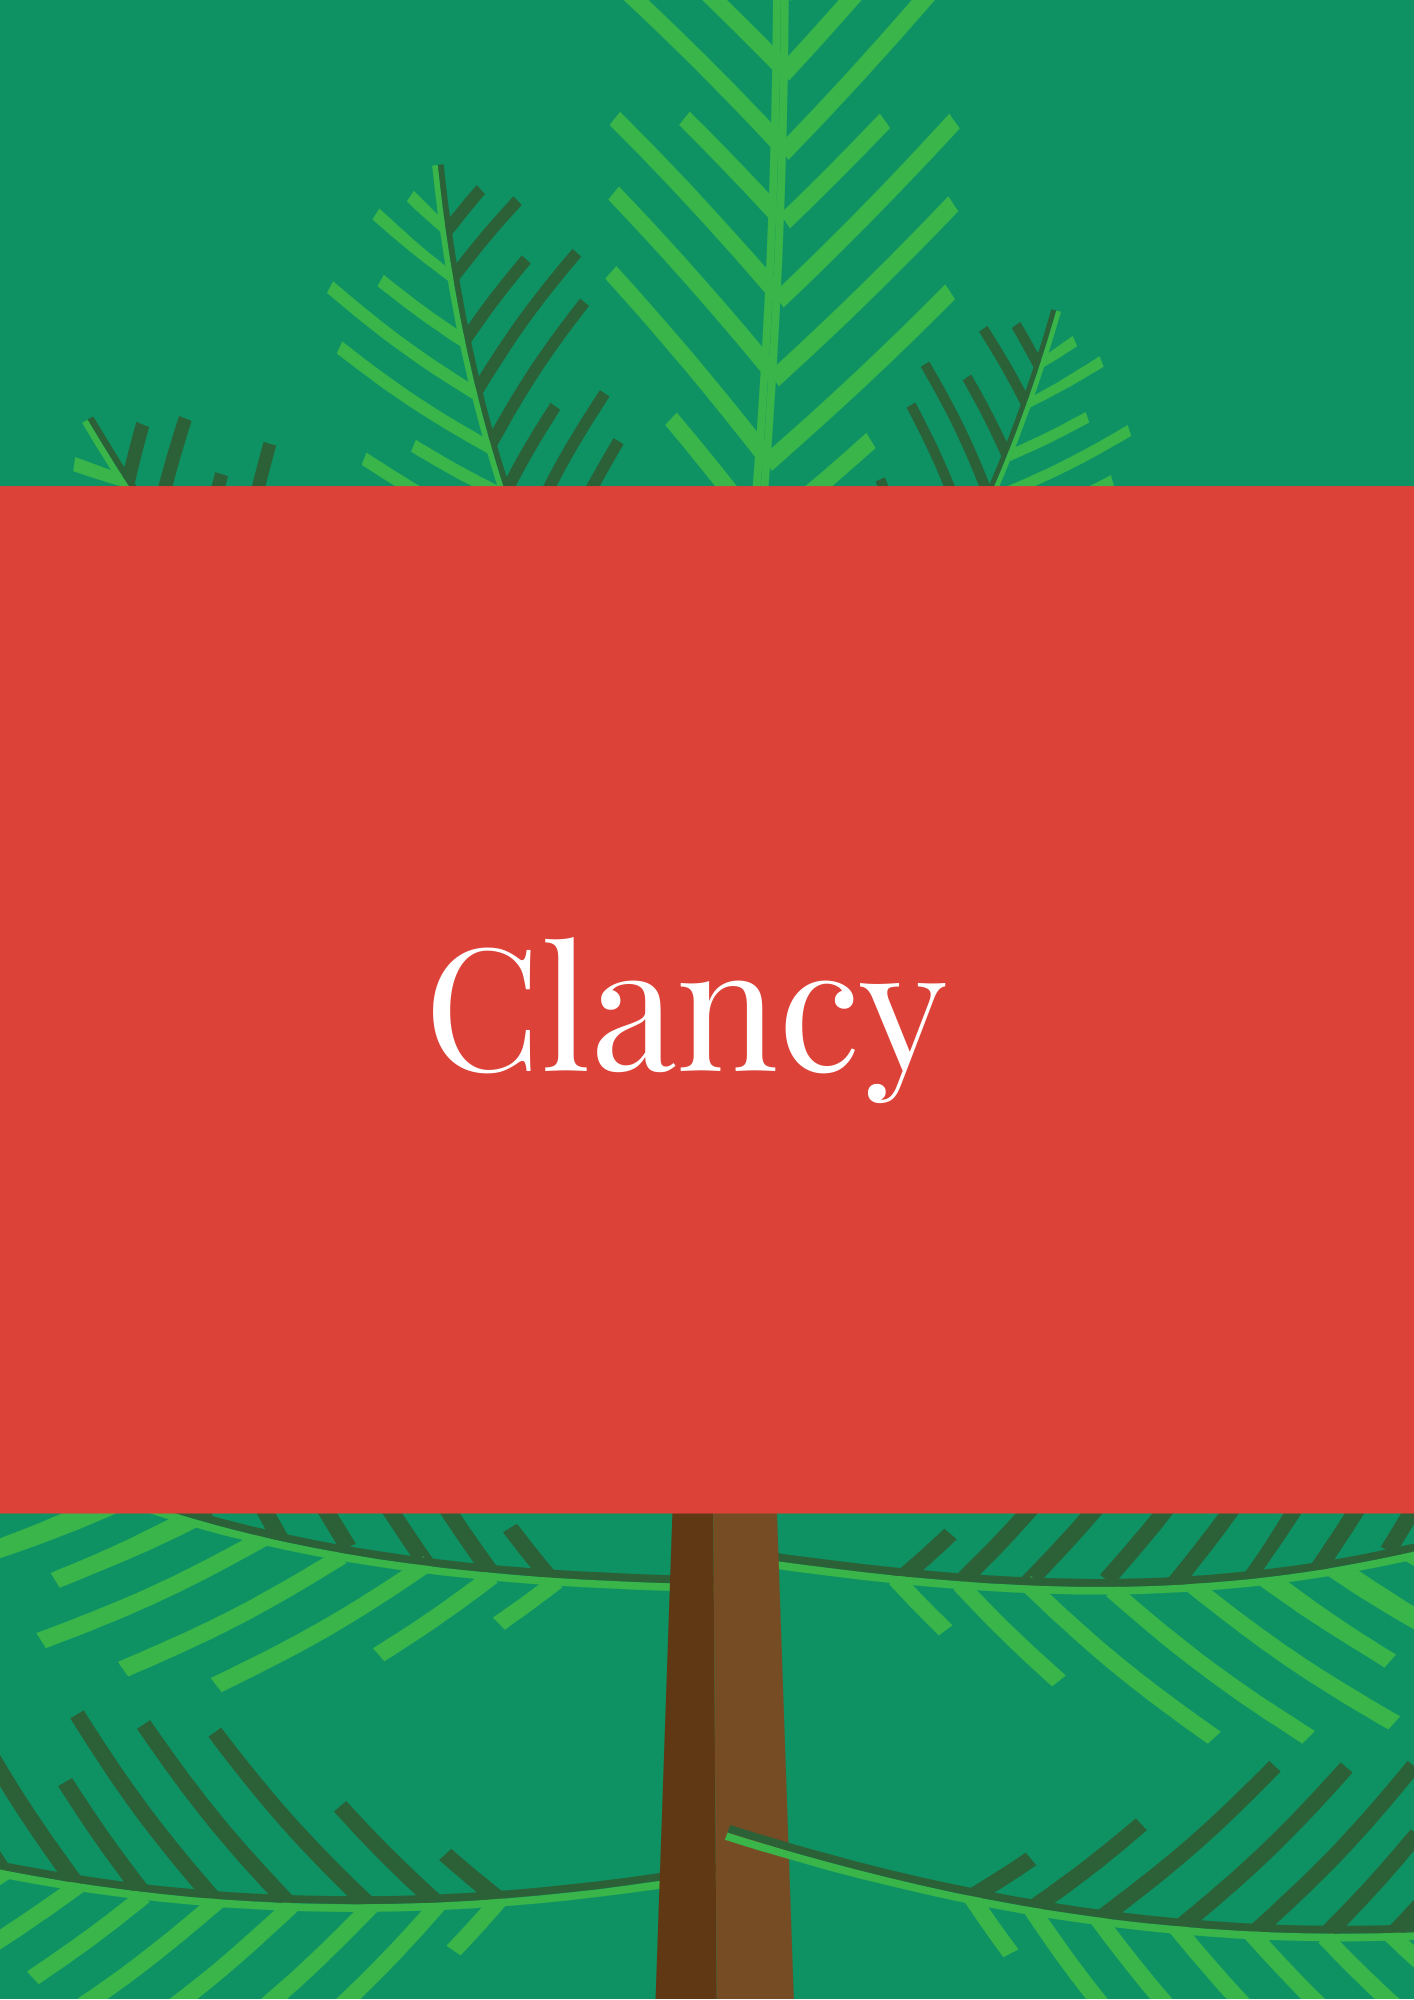 Clancy Elf Names